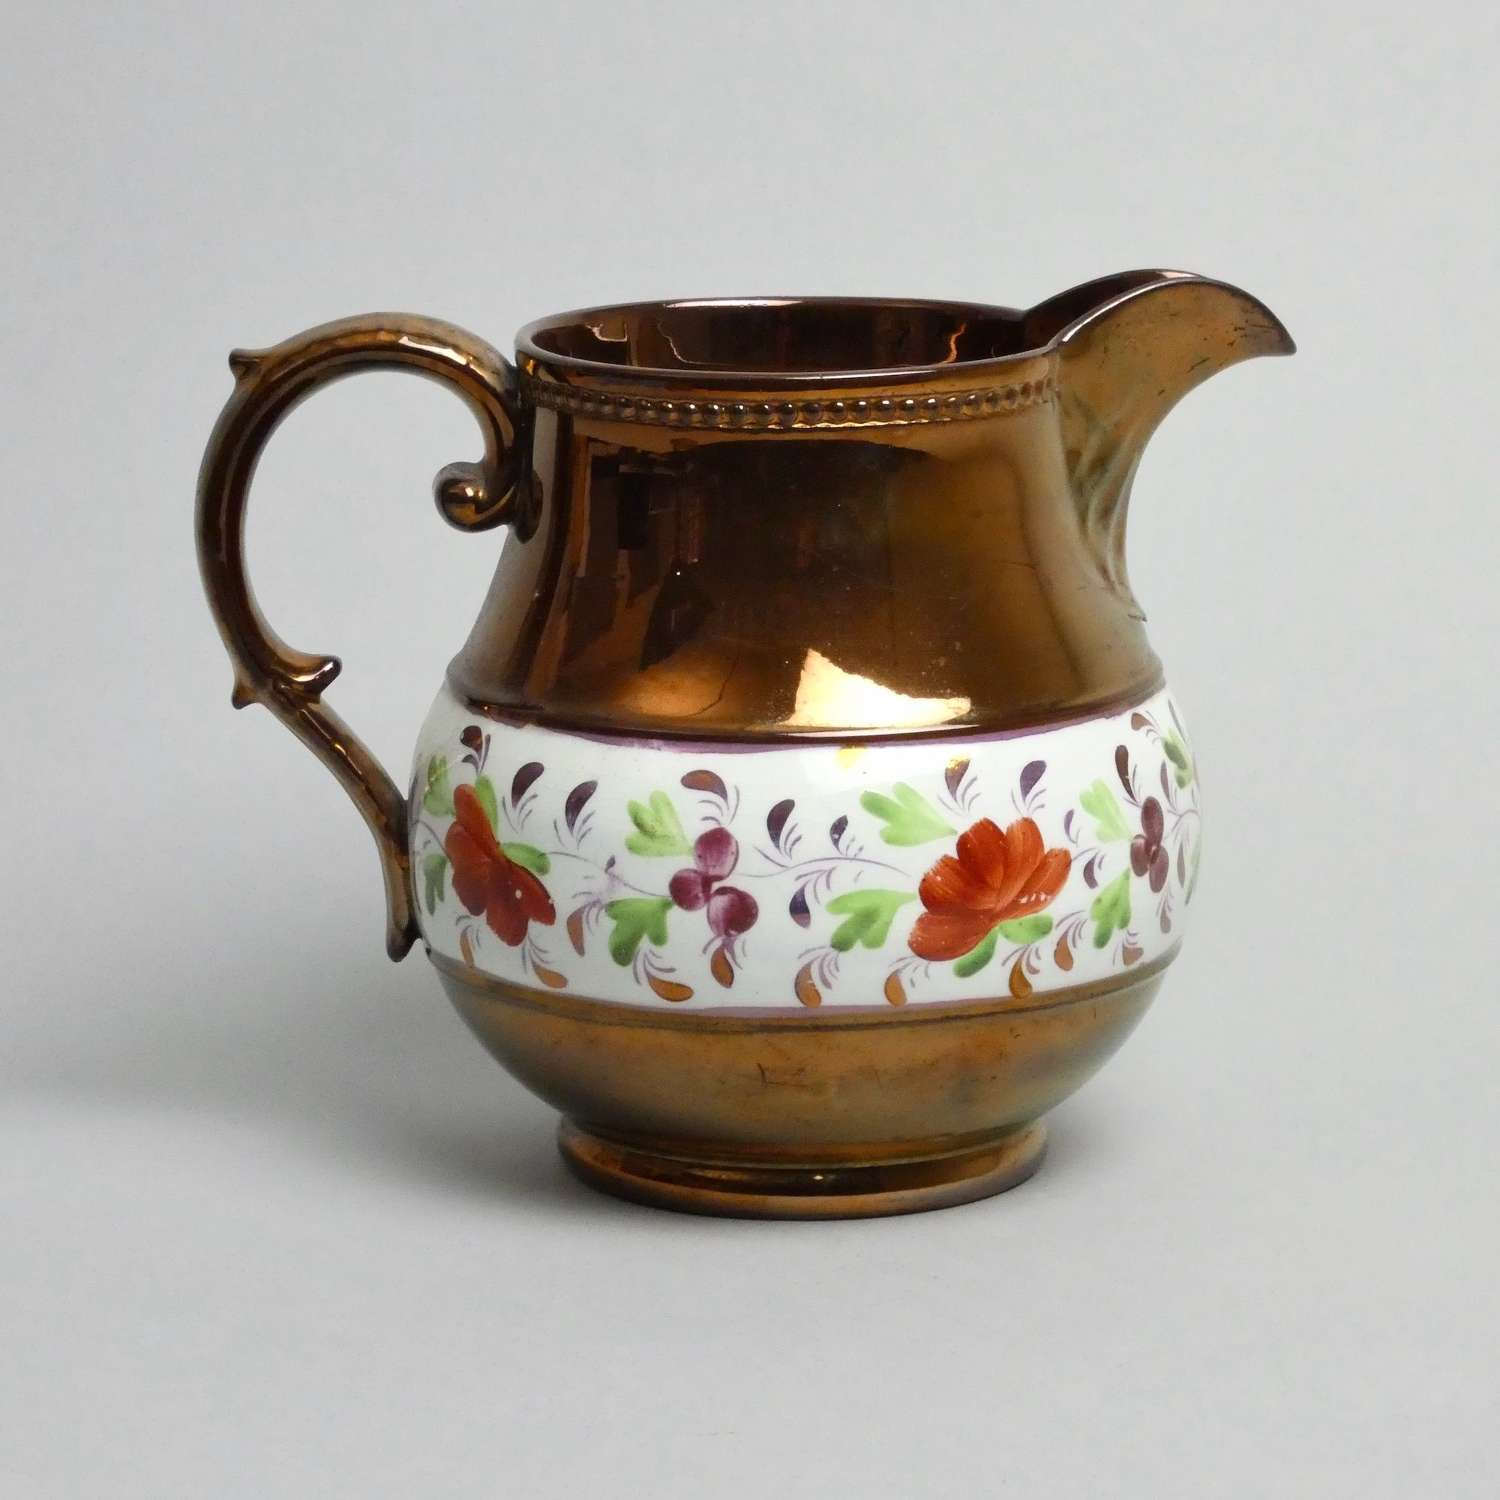 Copper lustre jug with enamelled flowers